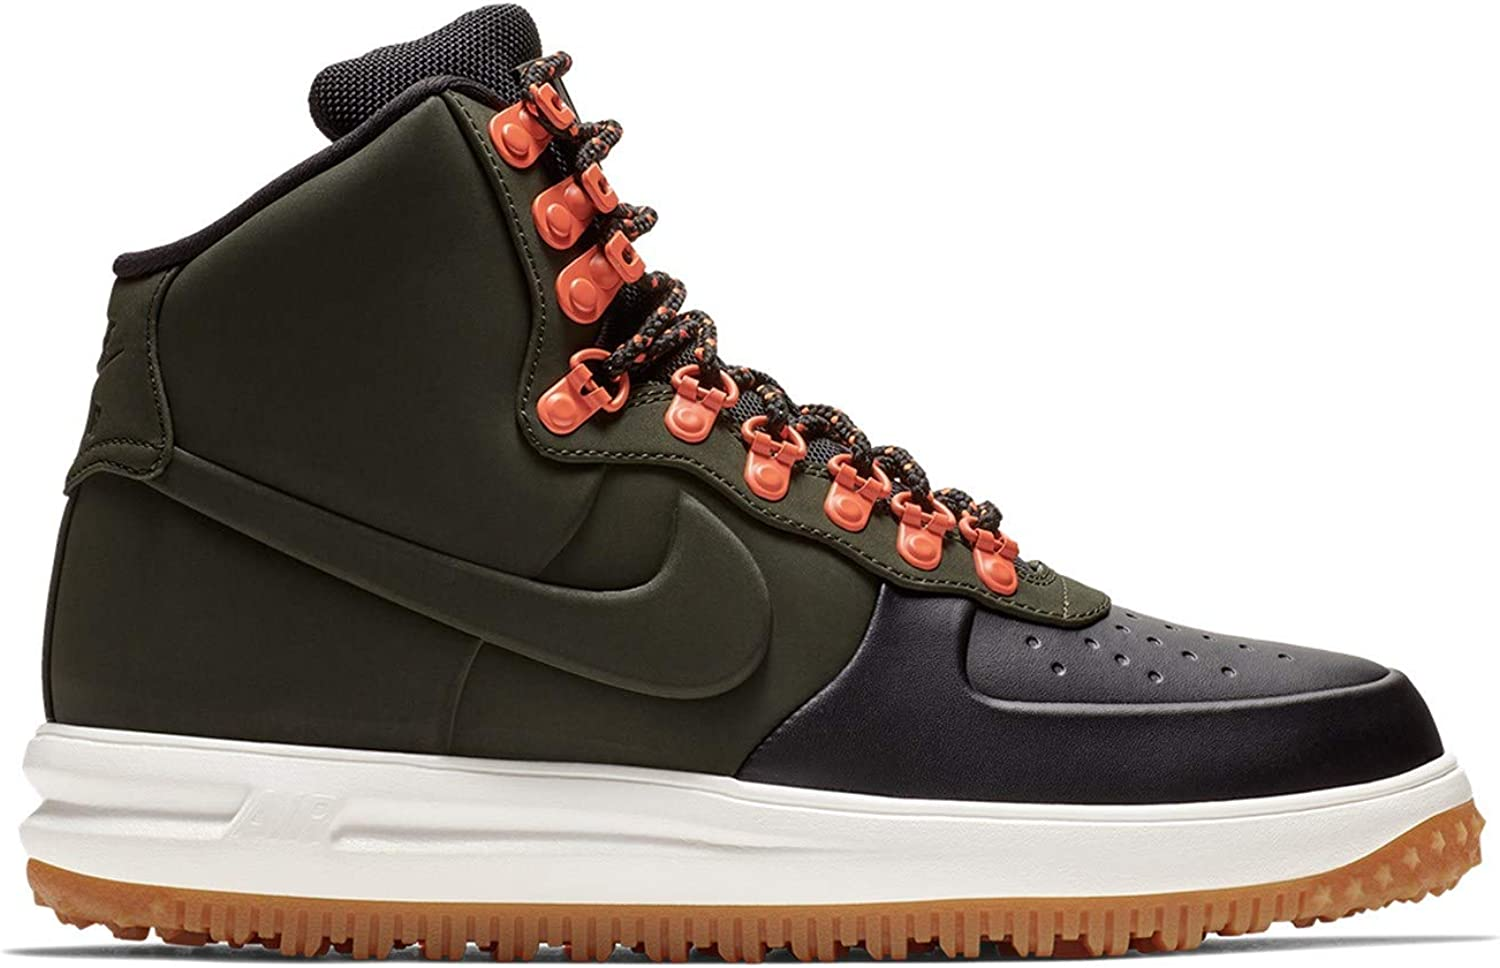 Nike Lunar Force 1 Duckboot '18 Mens Bq7930-004